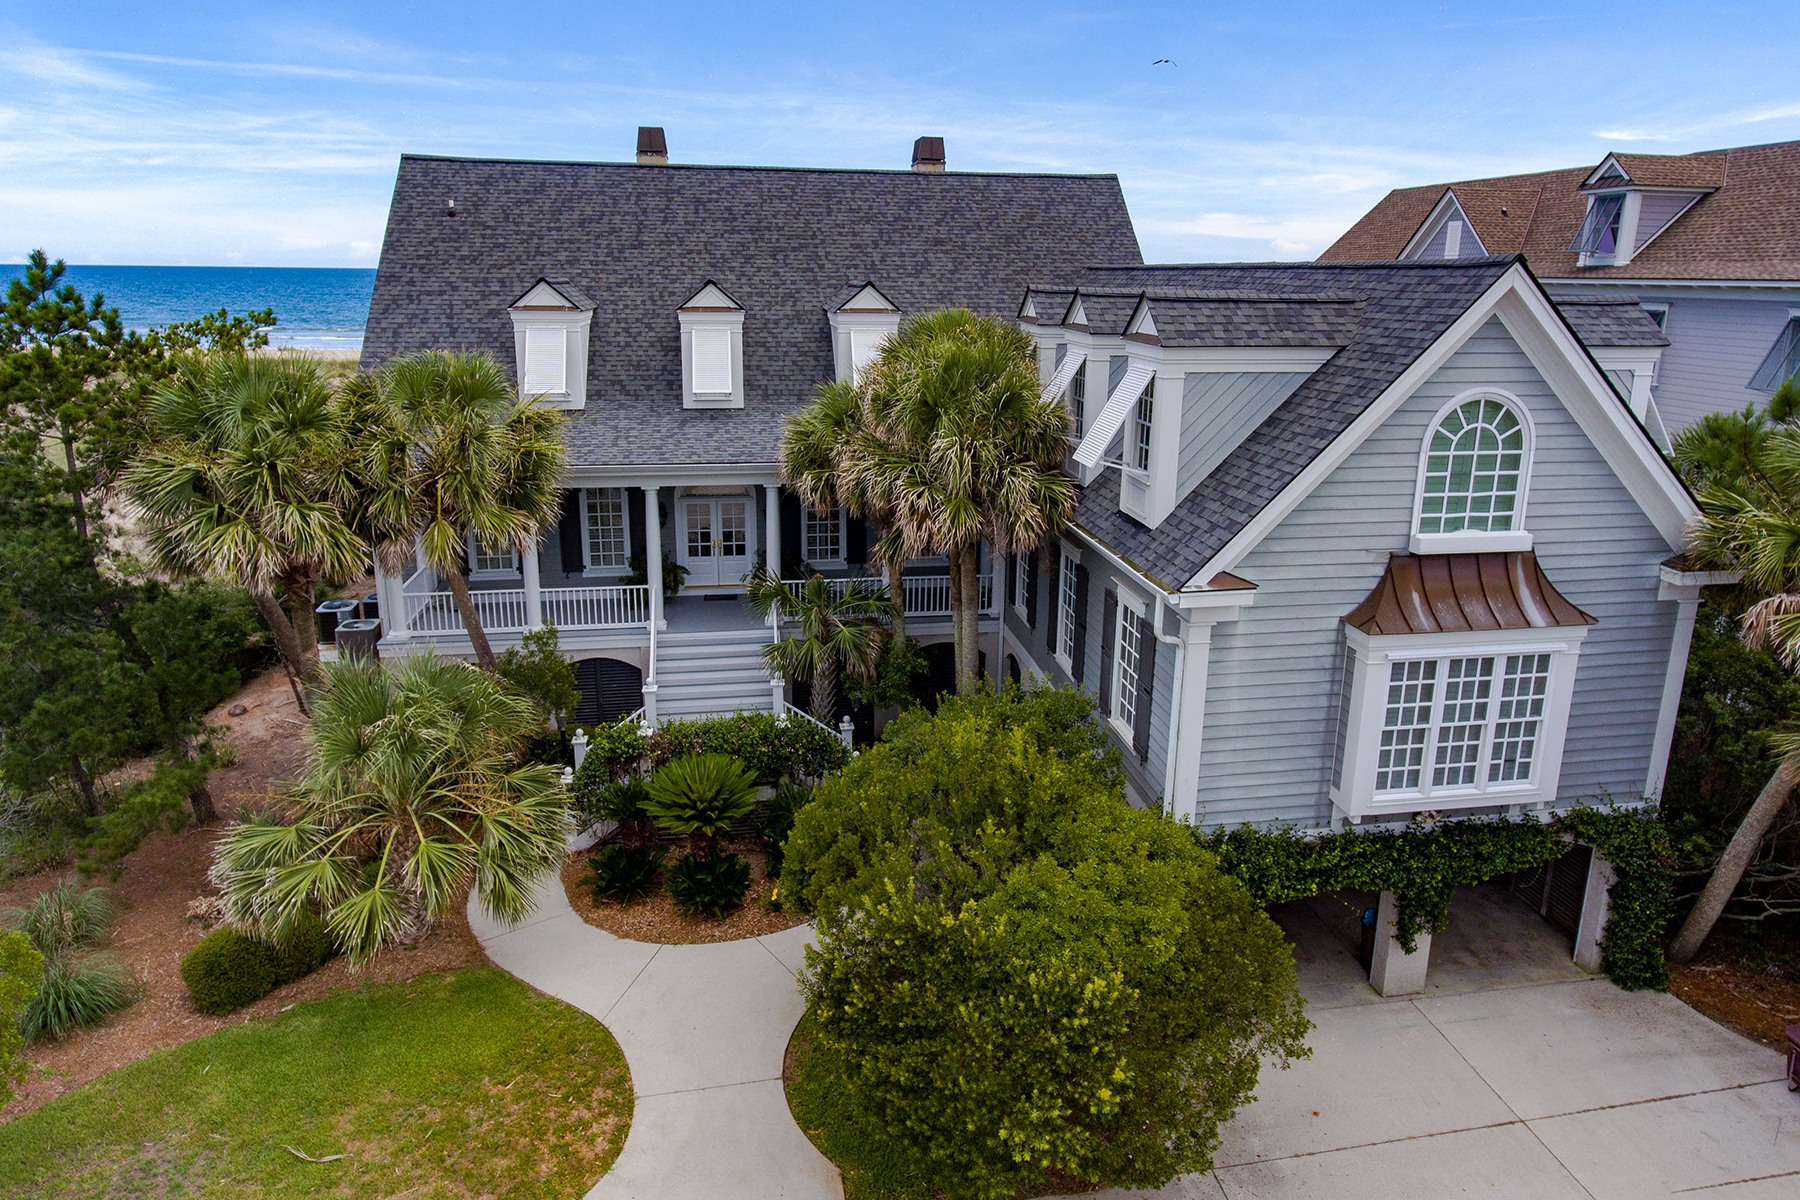 Single Family Homes for Active at 549 Beach Bridge Road Pawleys Island, South Carolina 29585 United States